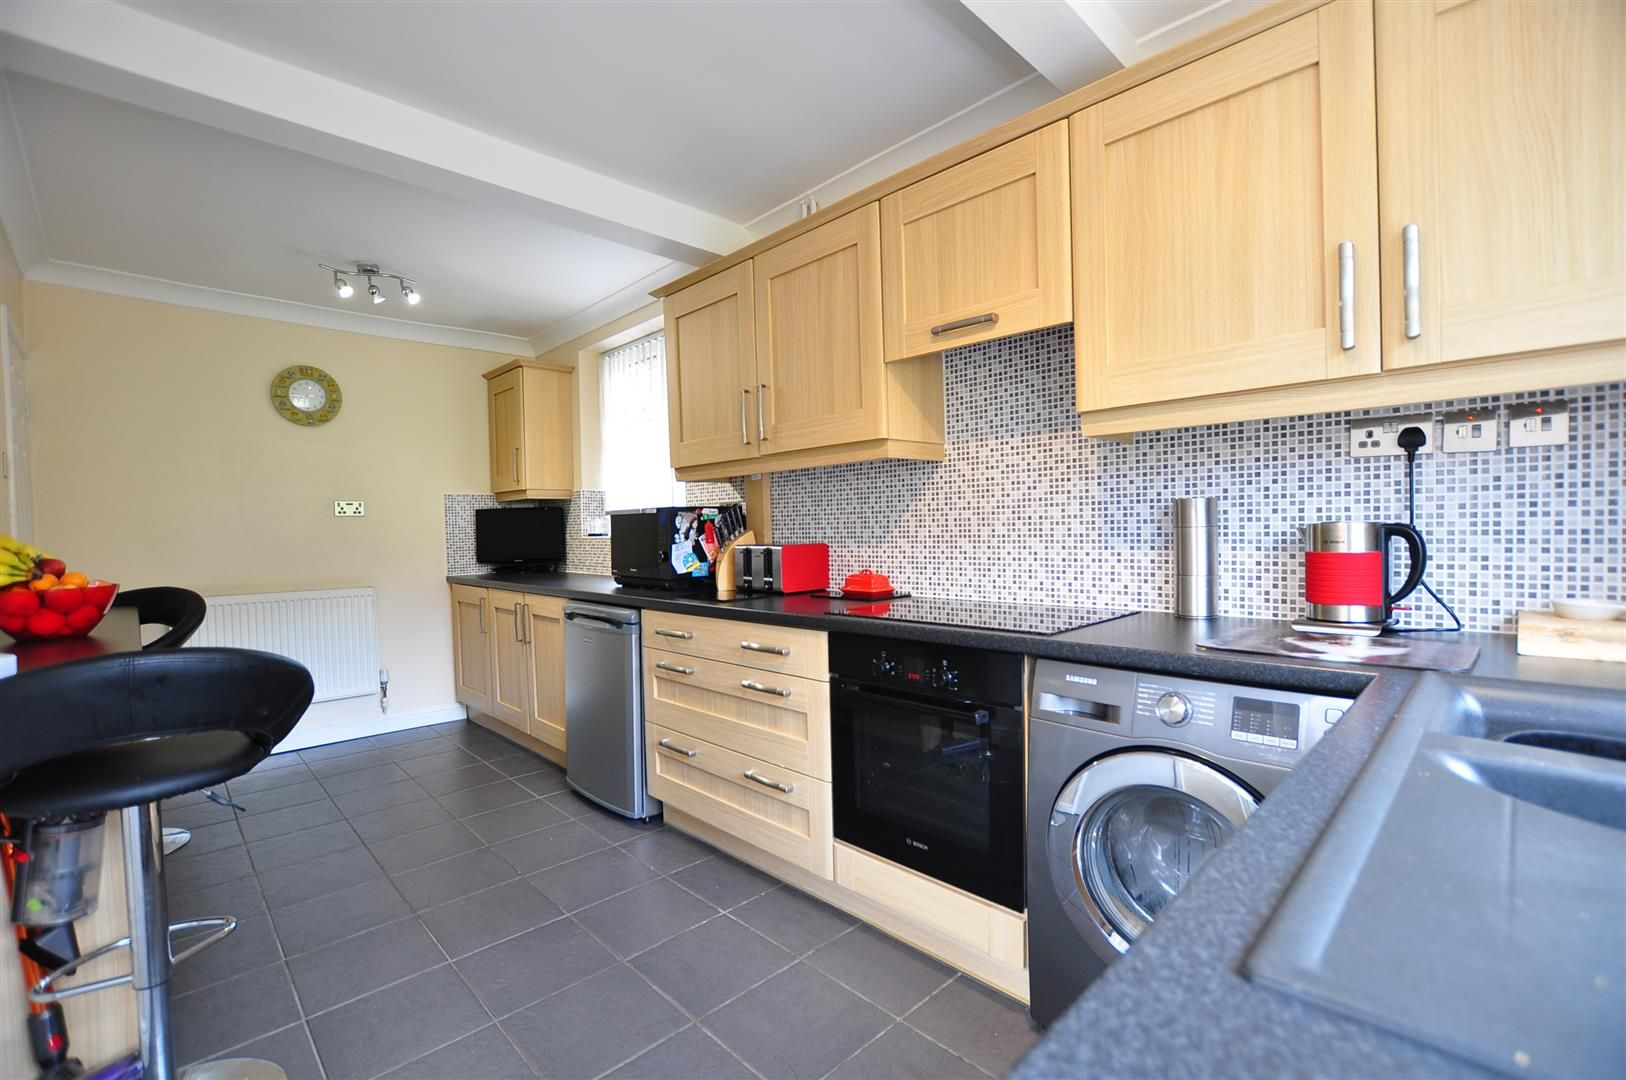 3 bed semi-detached for sale in Lower Gornal  - Property Image 3